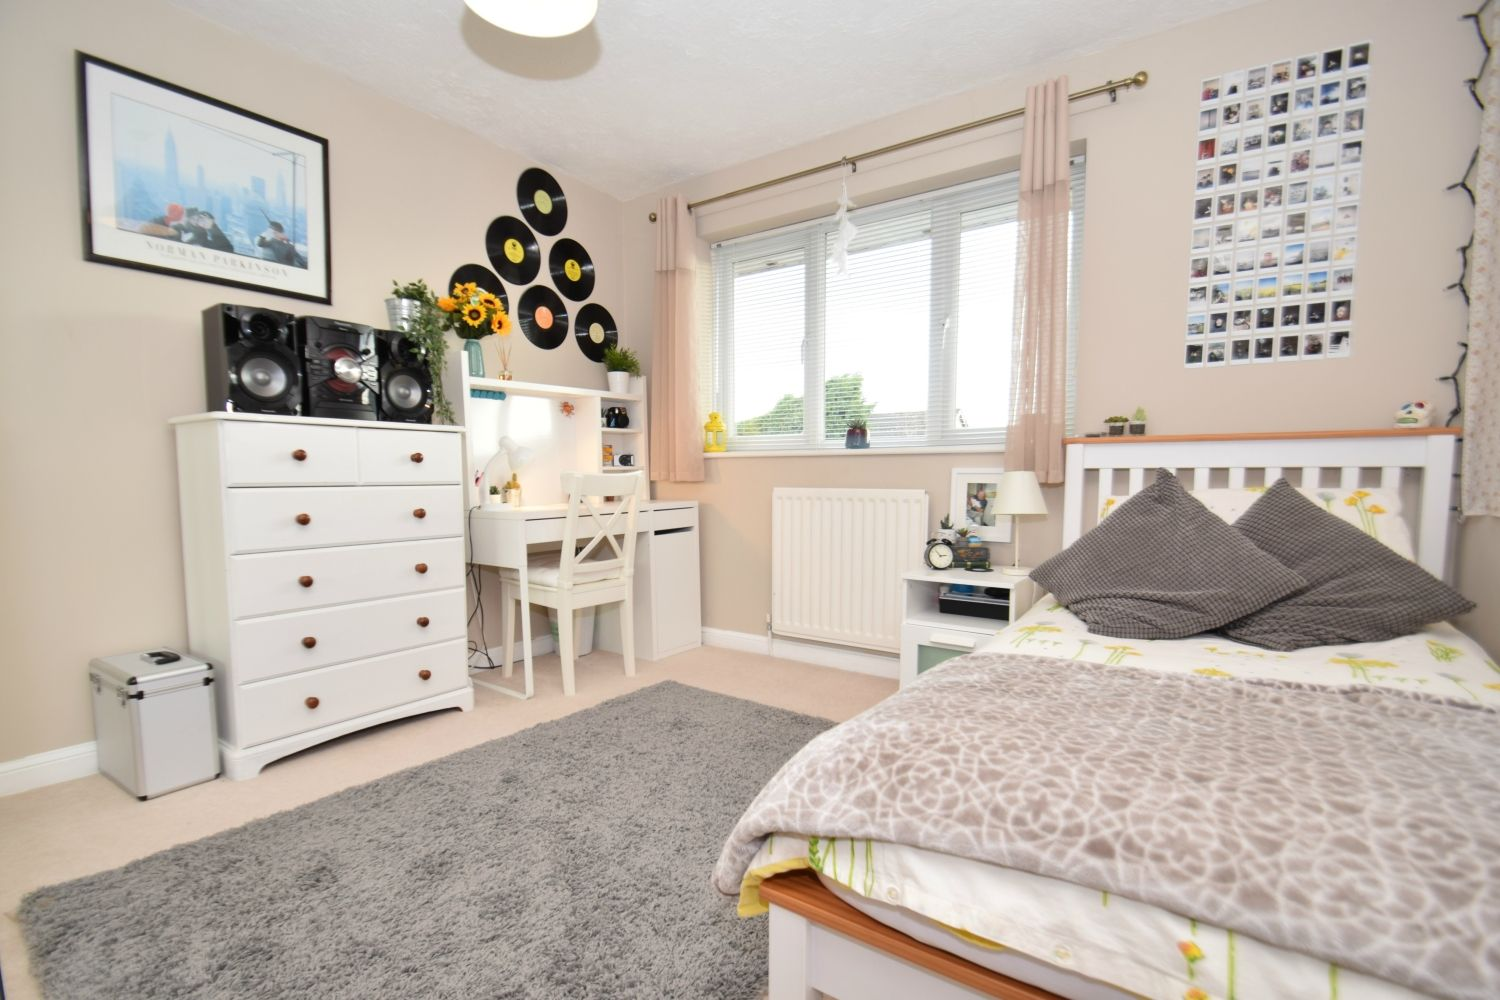 3 bed detached for sale in Foxes Close, Blackwell, B60 14